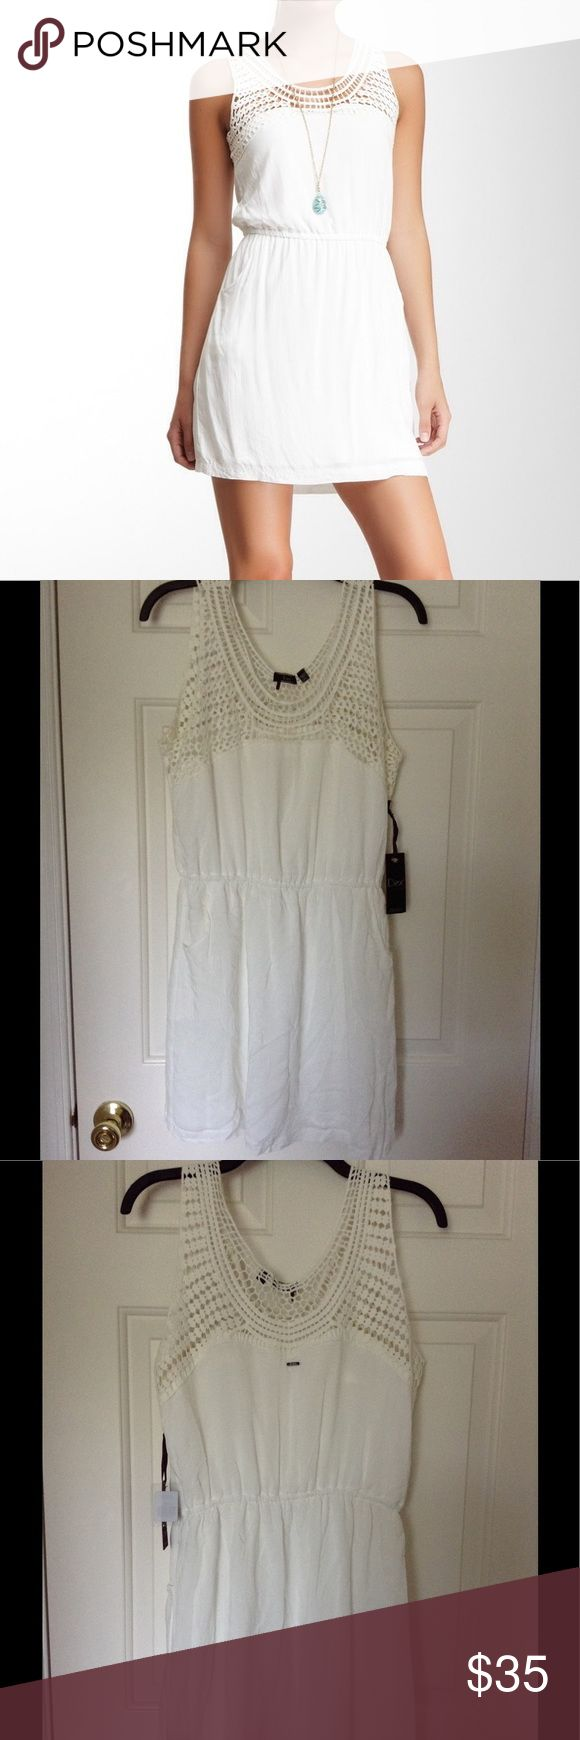 ☀️NWT DEX SUMMER DRESS 🌸NWT DEX Crotchet Cream Trim Dress....elastic waist..scoop neck front pockets. True to size..fully lined. Great dress for summer!!!!   💯 Authentic Brand  ‼️NO TRADES  🛍 2+ BUNDLE = SAVINGS   ❓ Please don't hesitate to ask questions  🖲 USE OFFER BUTTON TO NEGOTIATE DEX Dresses Mini